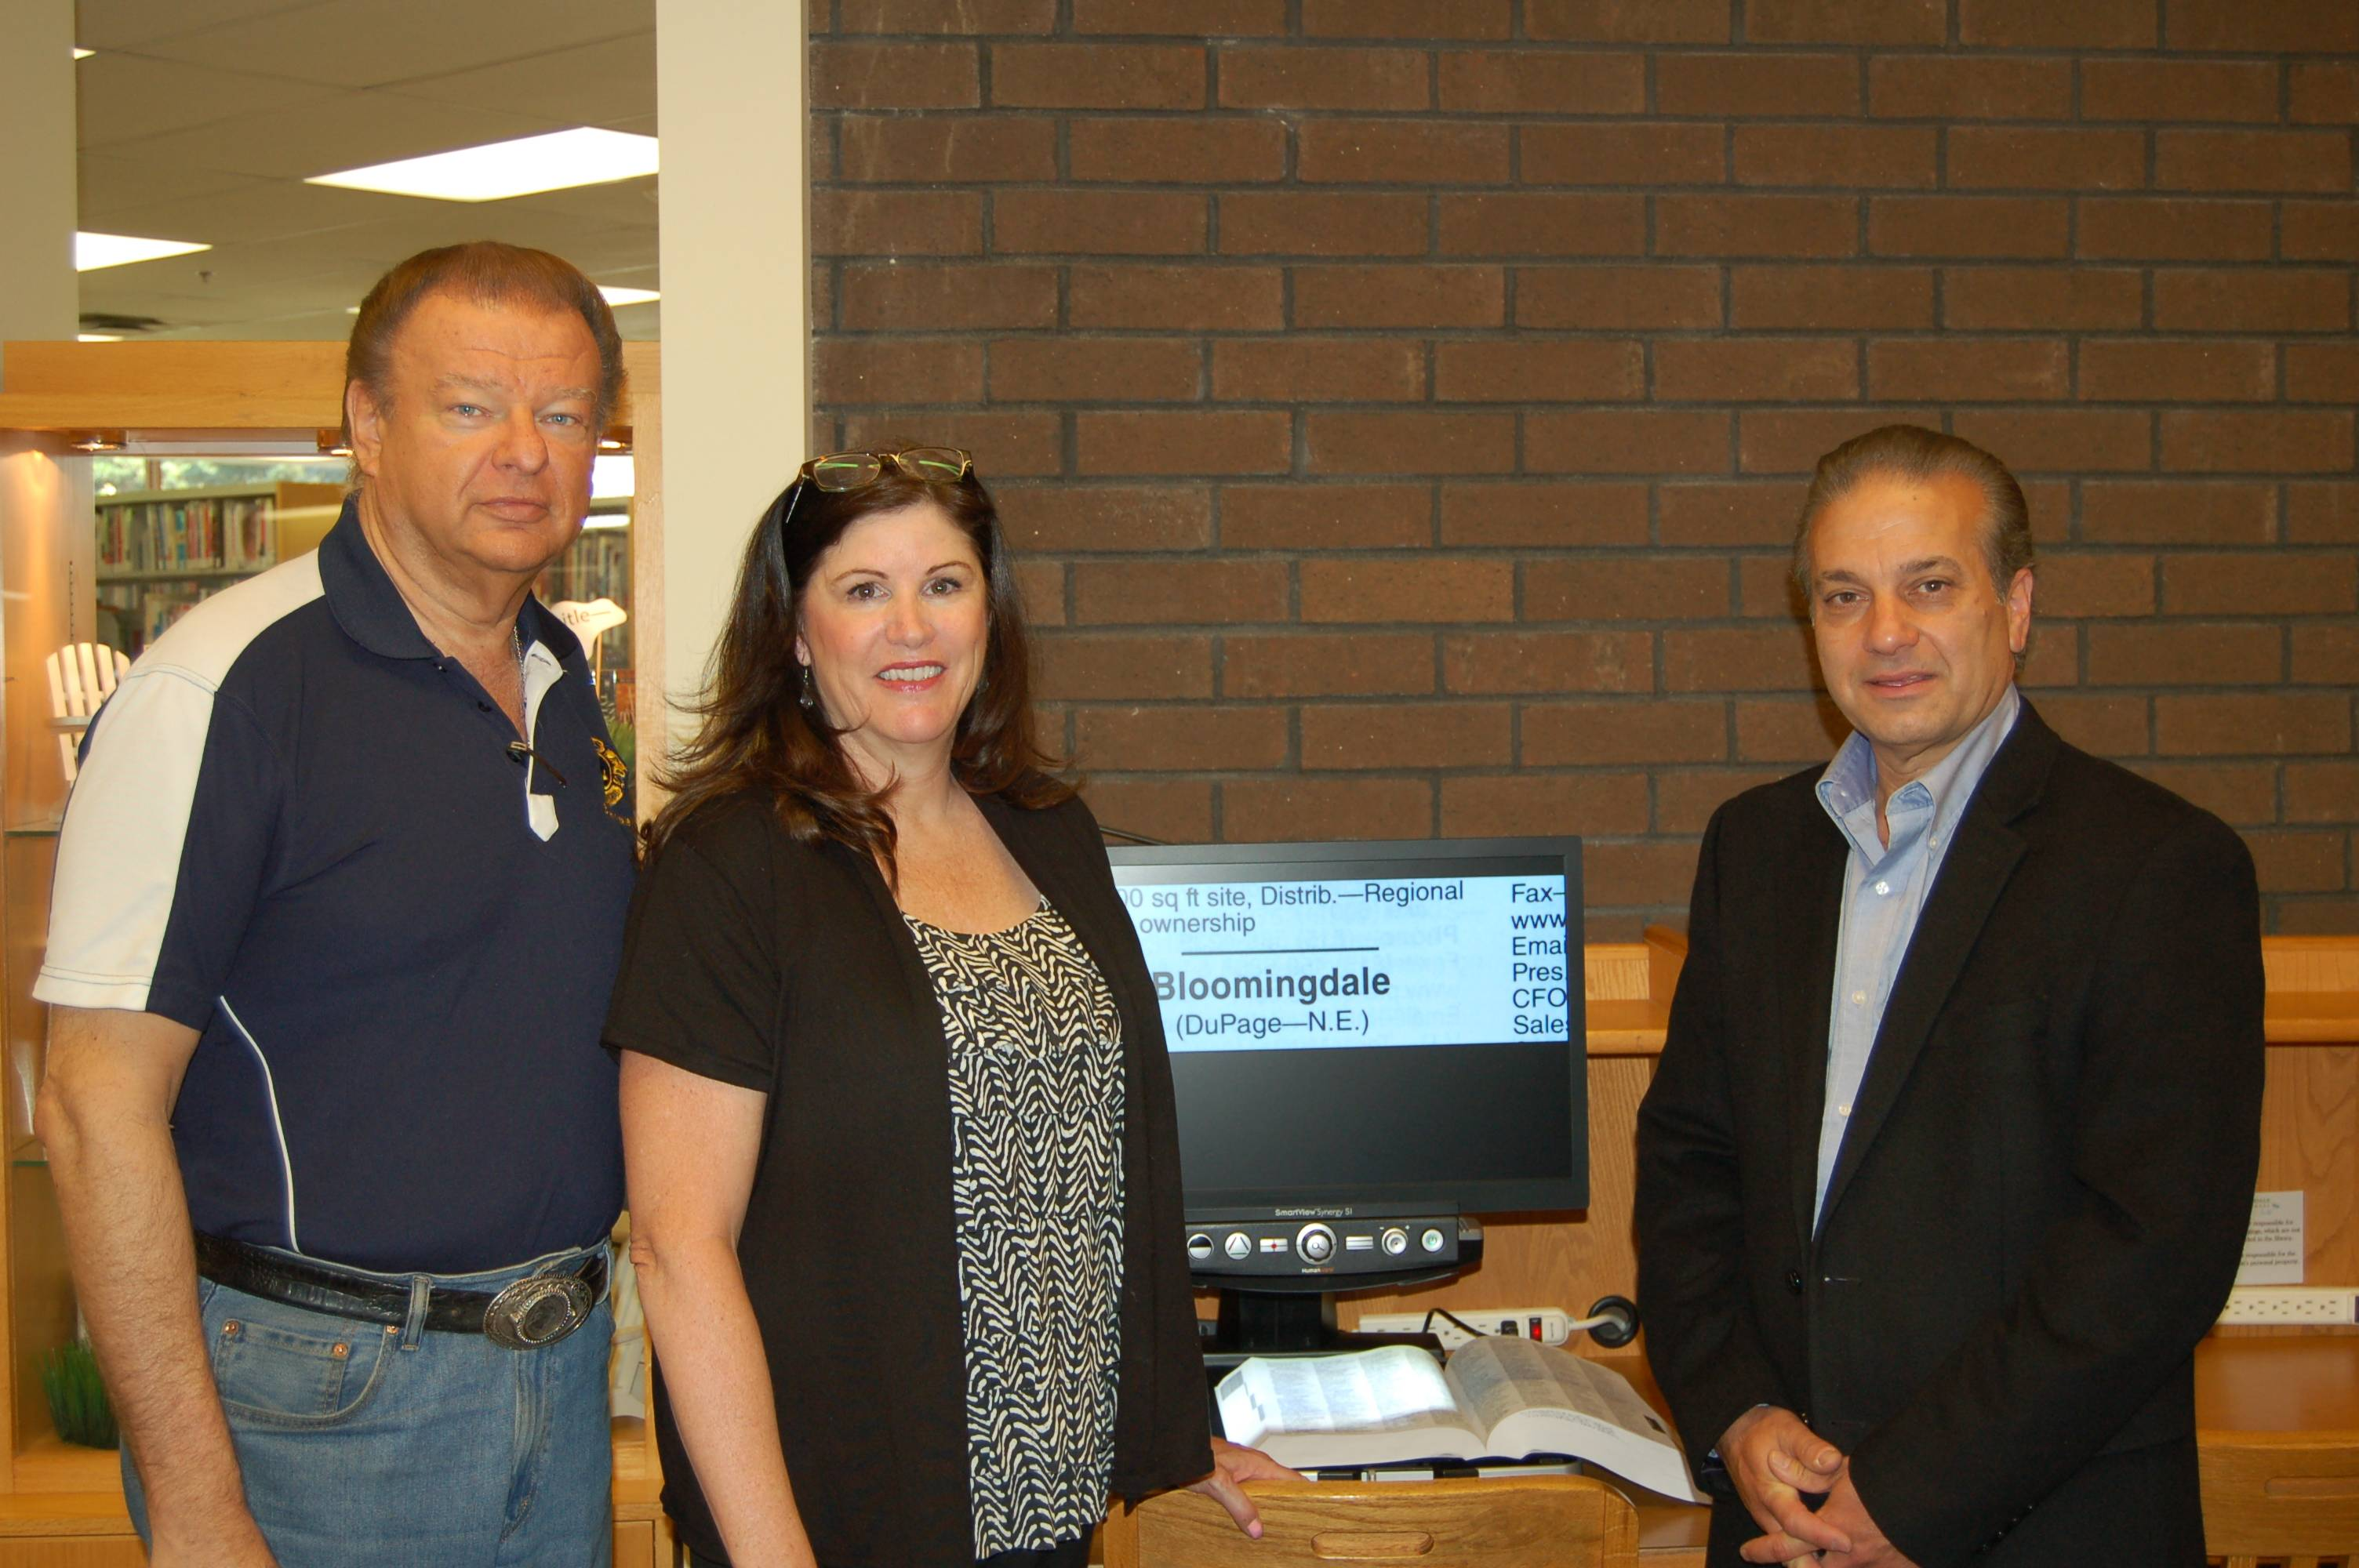 From left:  Stan Poplonski, President of the Bloomingdale Lions Club; Julie Keating, Bloomingdale Public Library Adult Services Department Head; and Sam D'Amico, President of the Bloomingdale Public Library Friends of the Library.